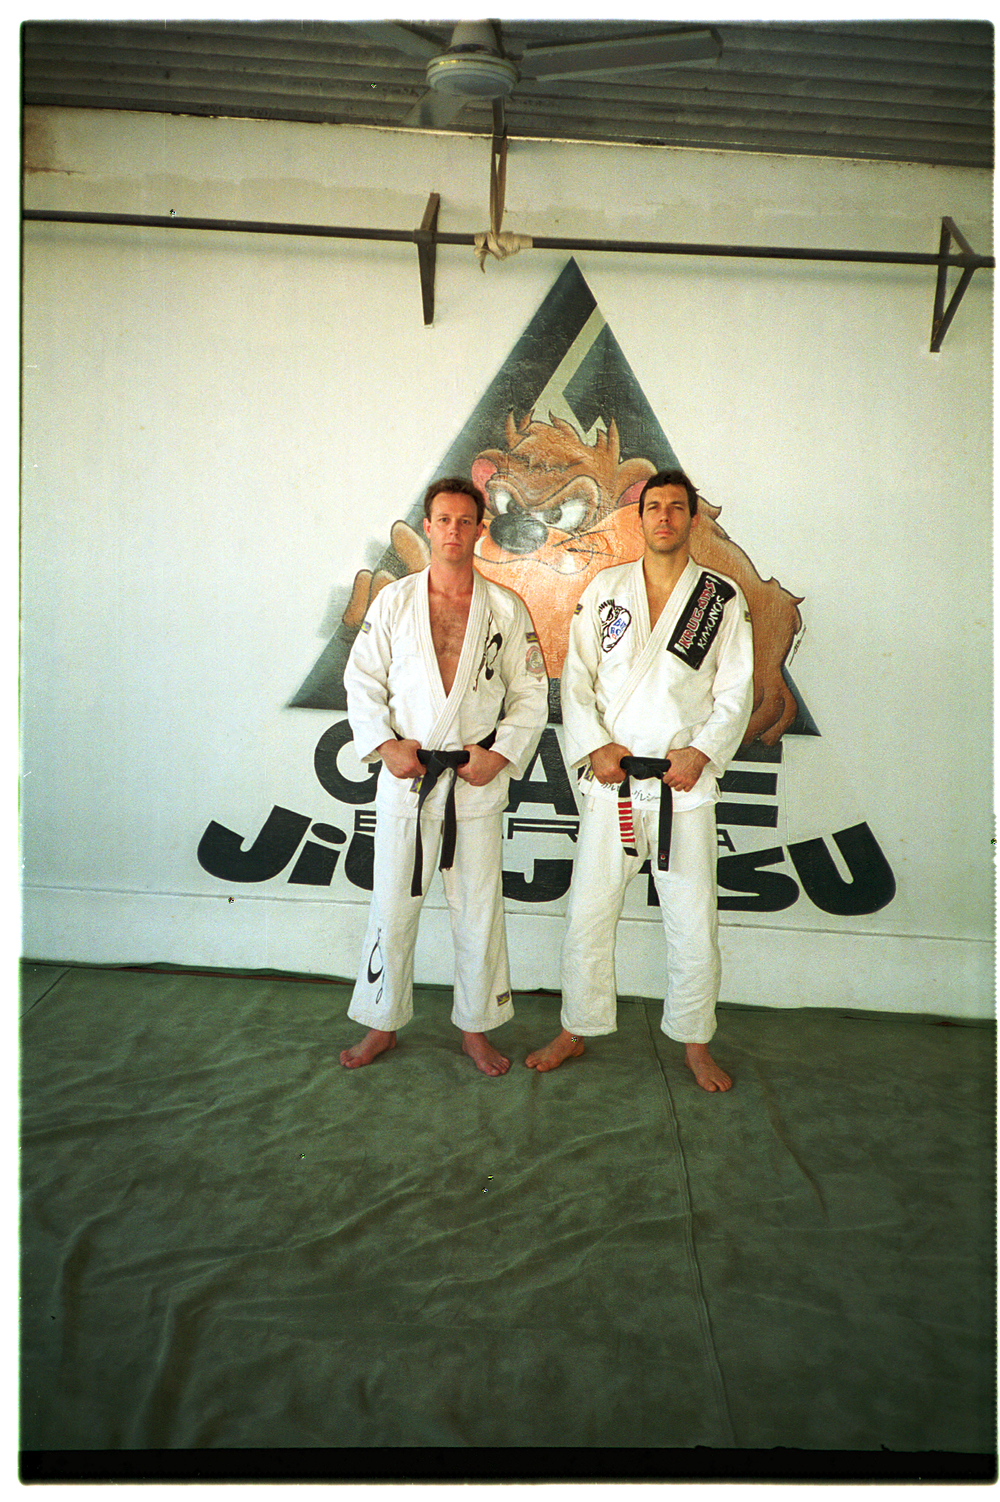 Pete and Carlinhos at the original Gracie Barra Academy, Rio de Janeiro Brasil 1996. (Check out the mats!)